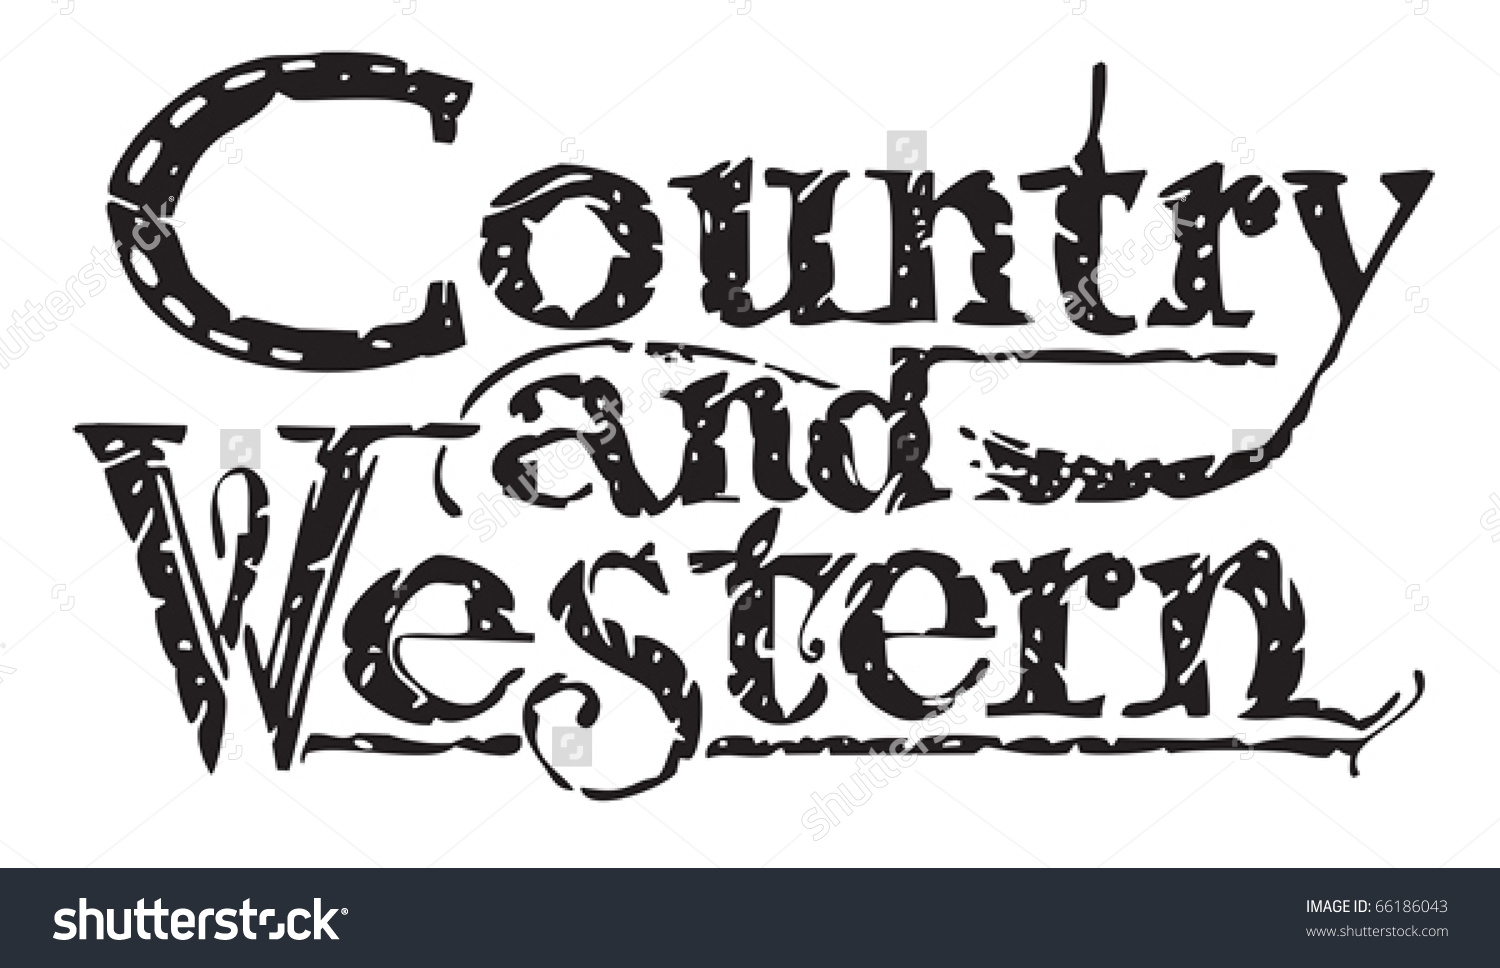 image library stock Country and western clipart. Free cliparts download clip